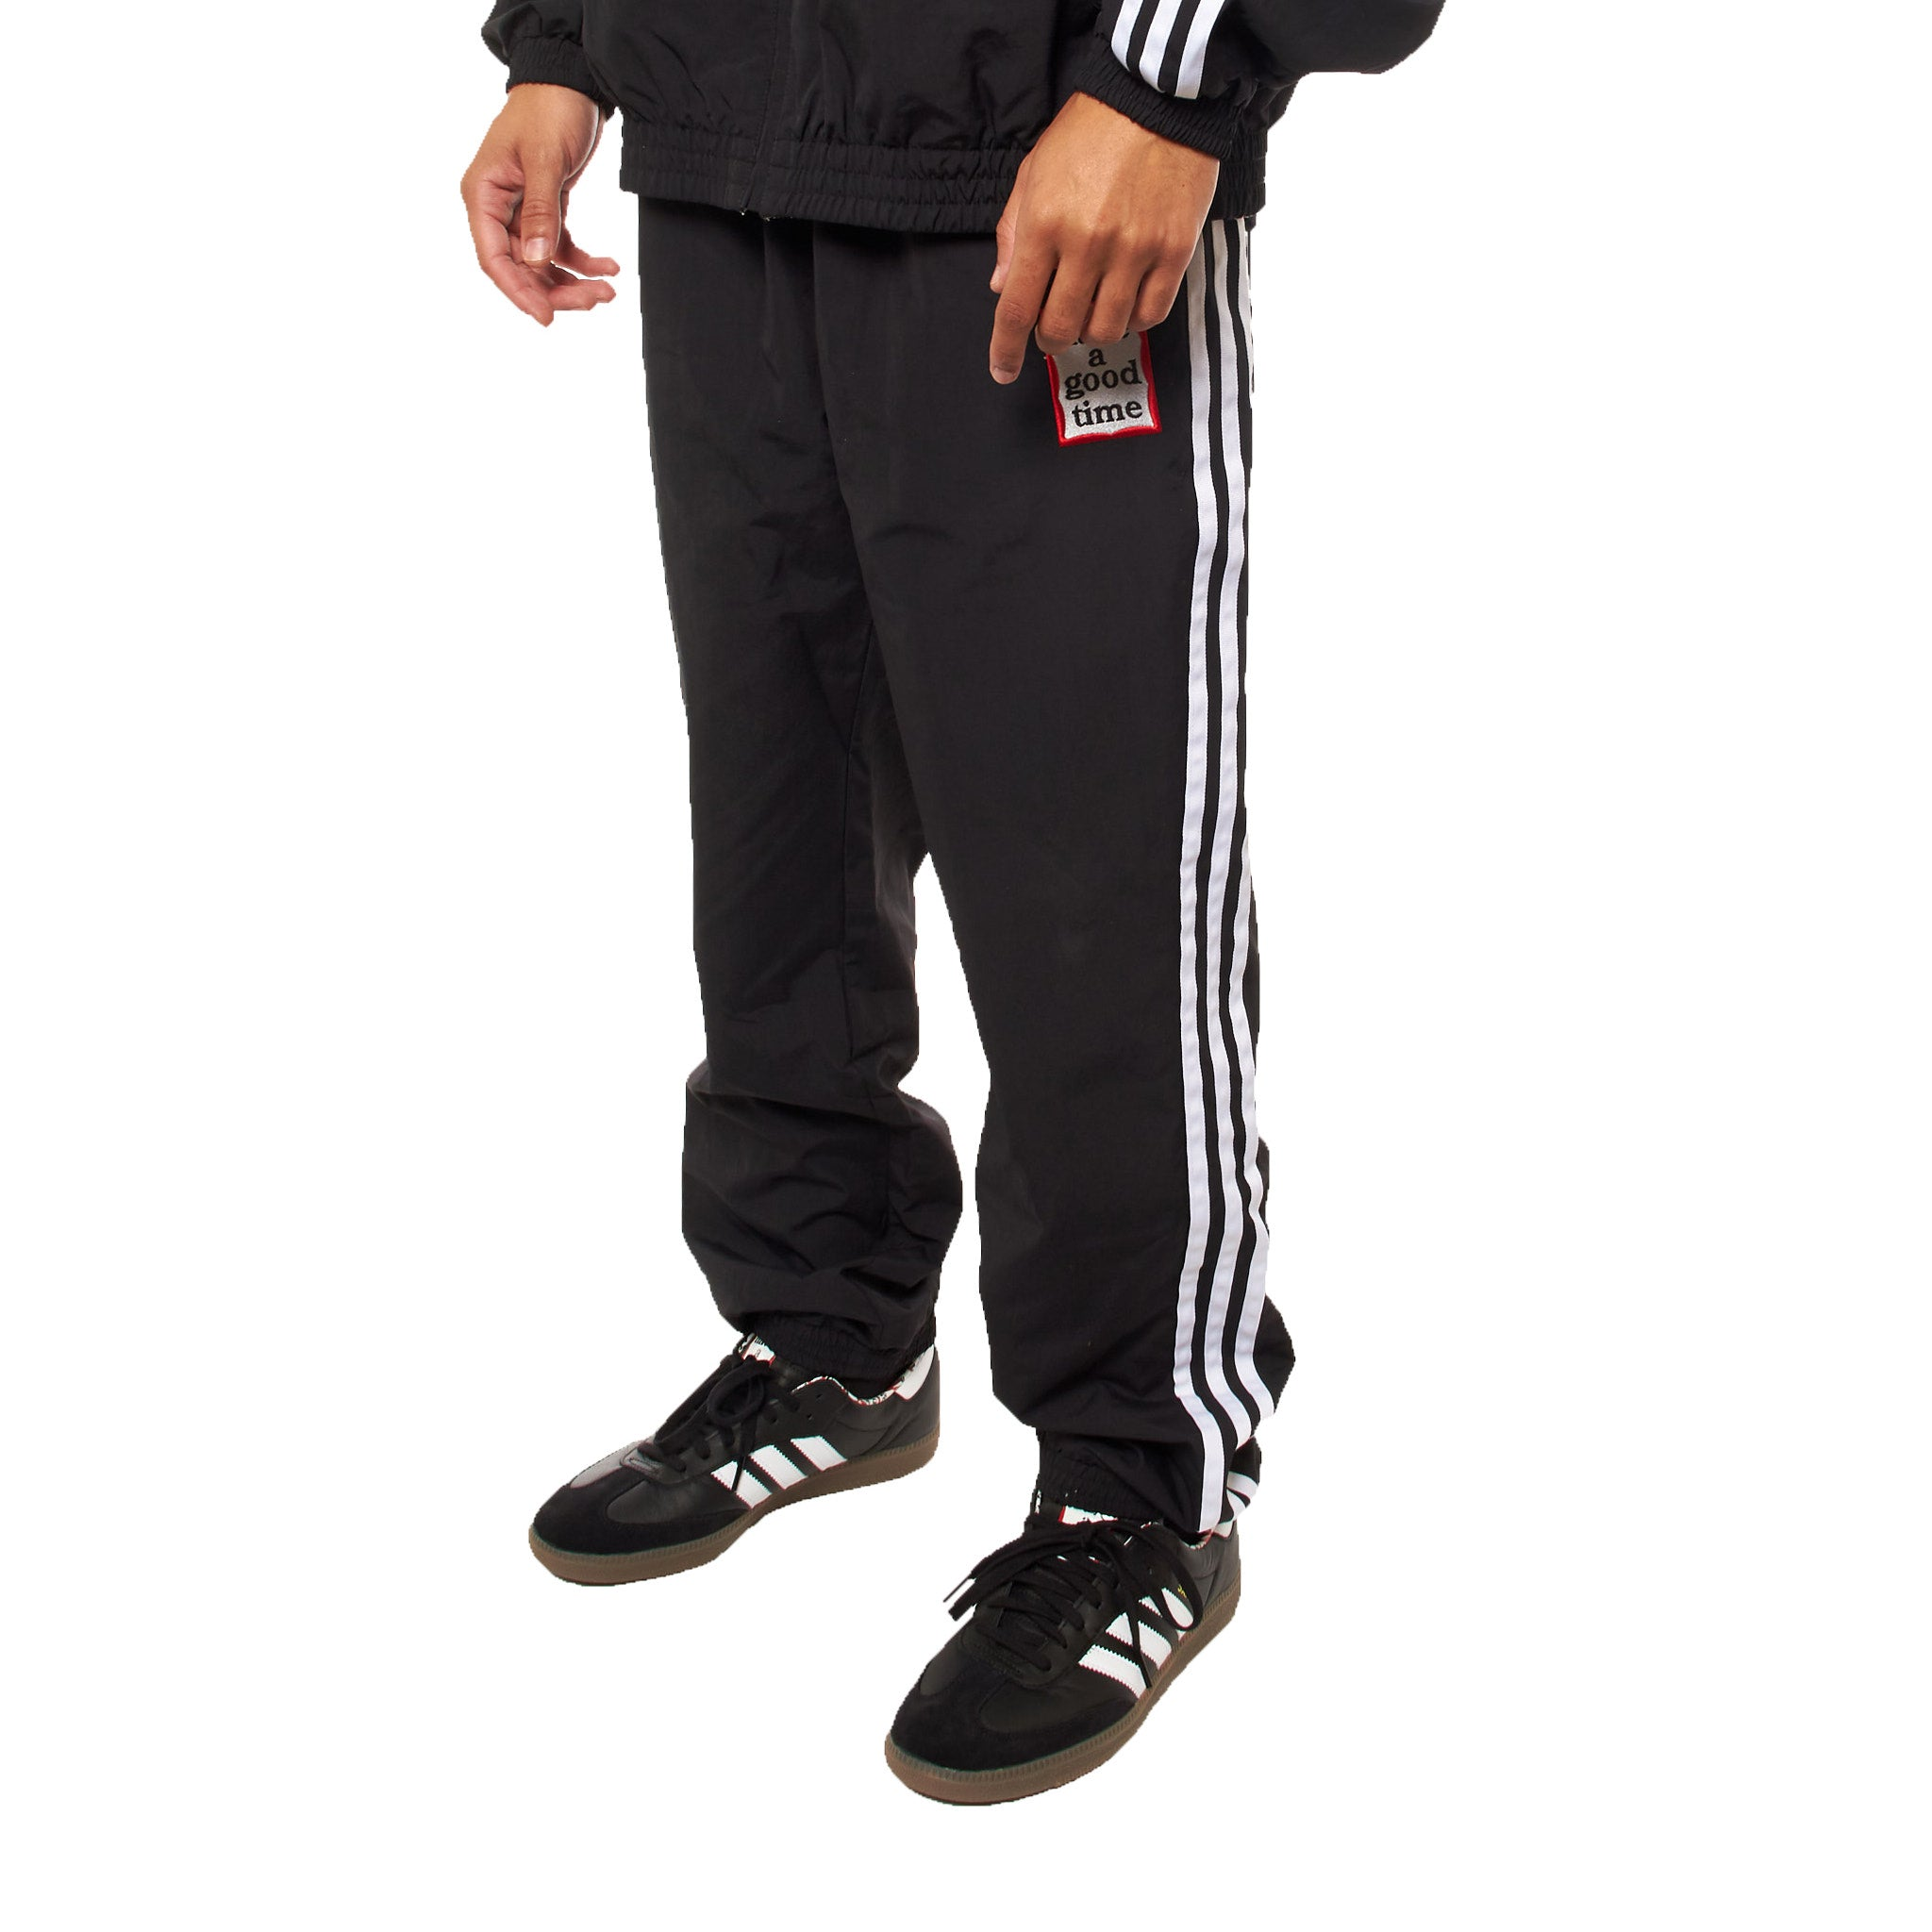 HAGT REV TRACK PANTS